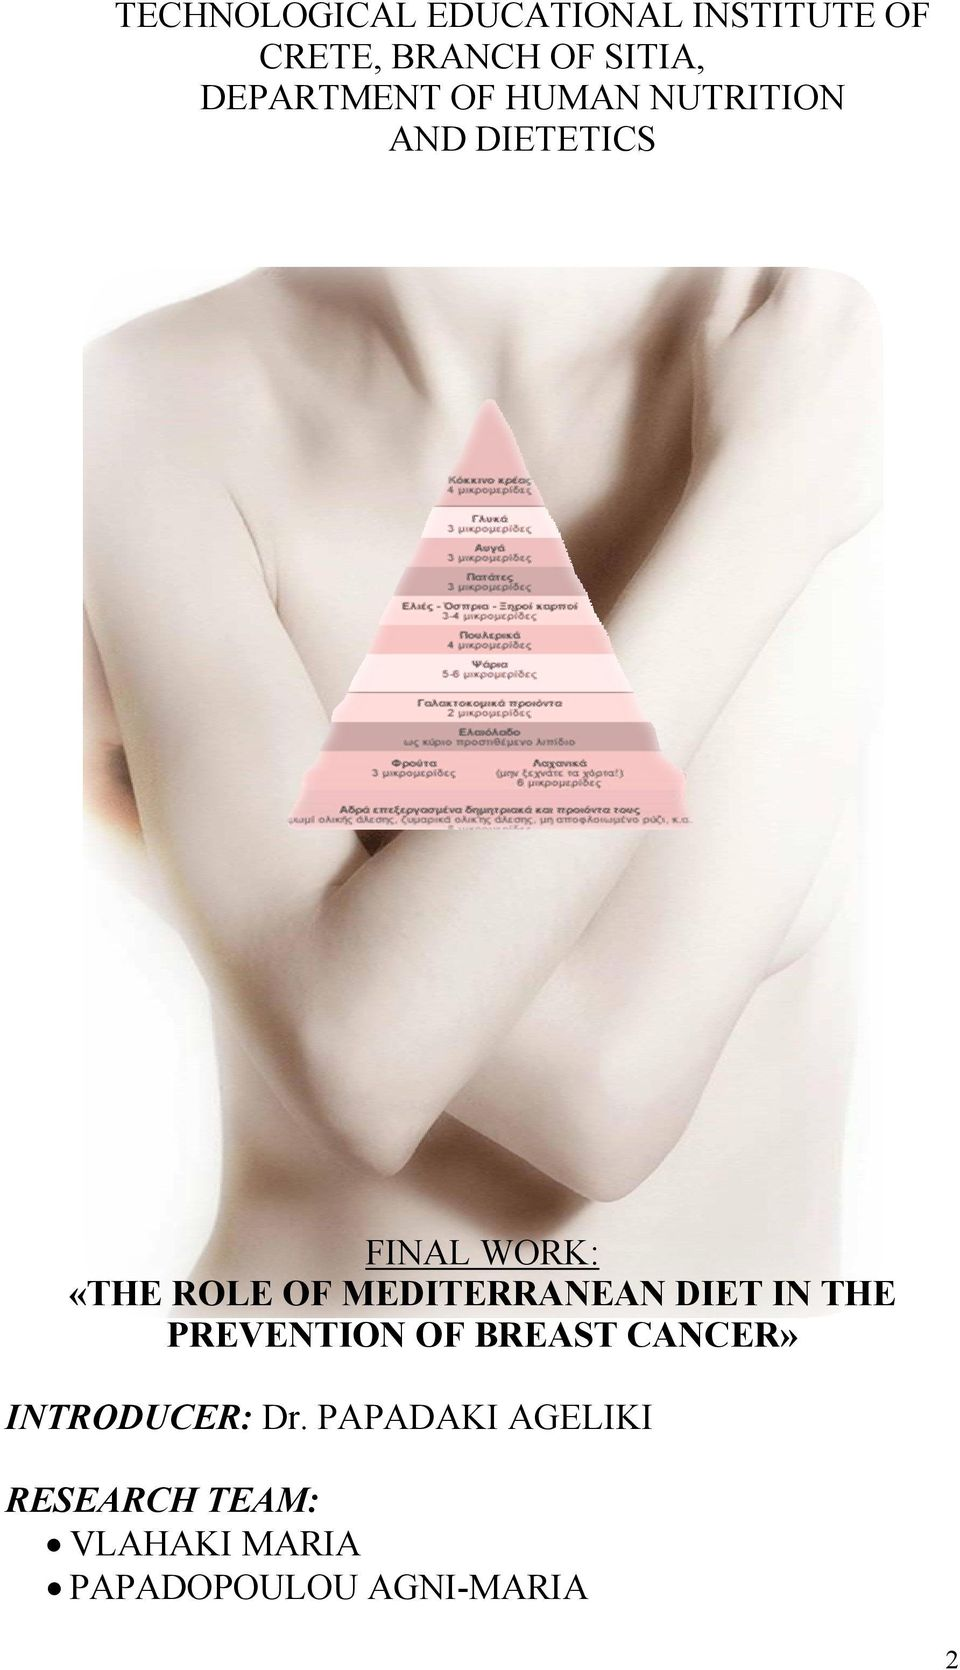 MEDITERRANEAN DIET IN THE PREVENTION OF BREAST CANCER» INTRODUCER: